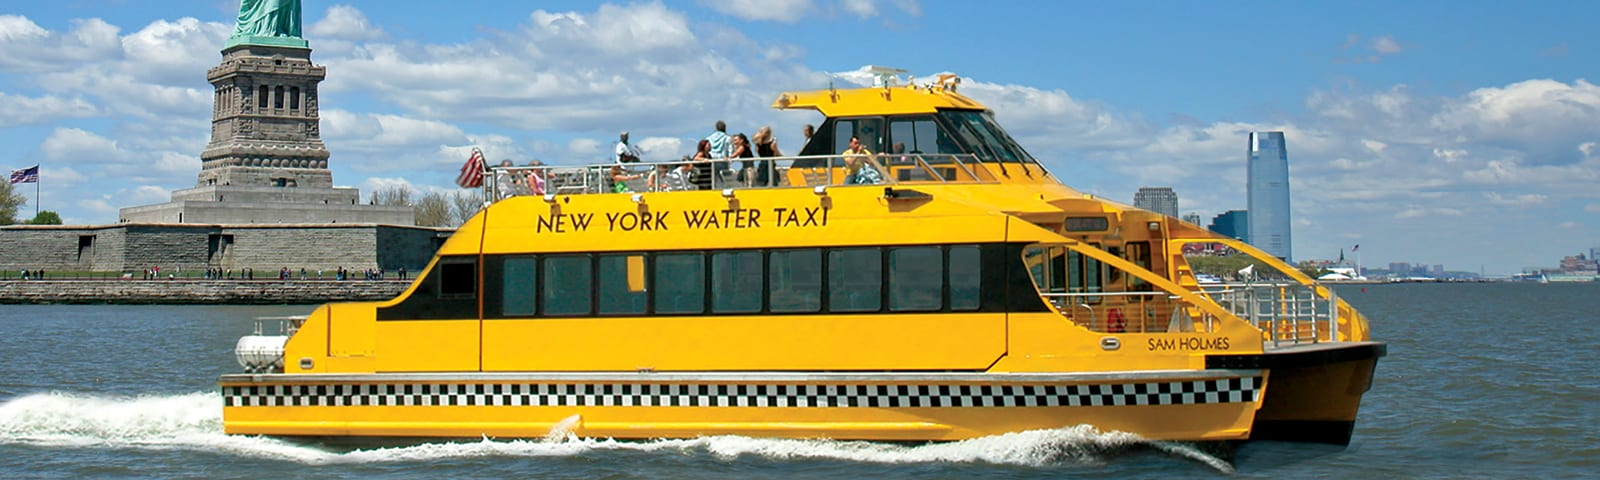 new york water tours review